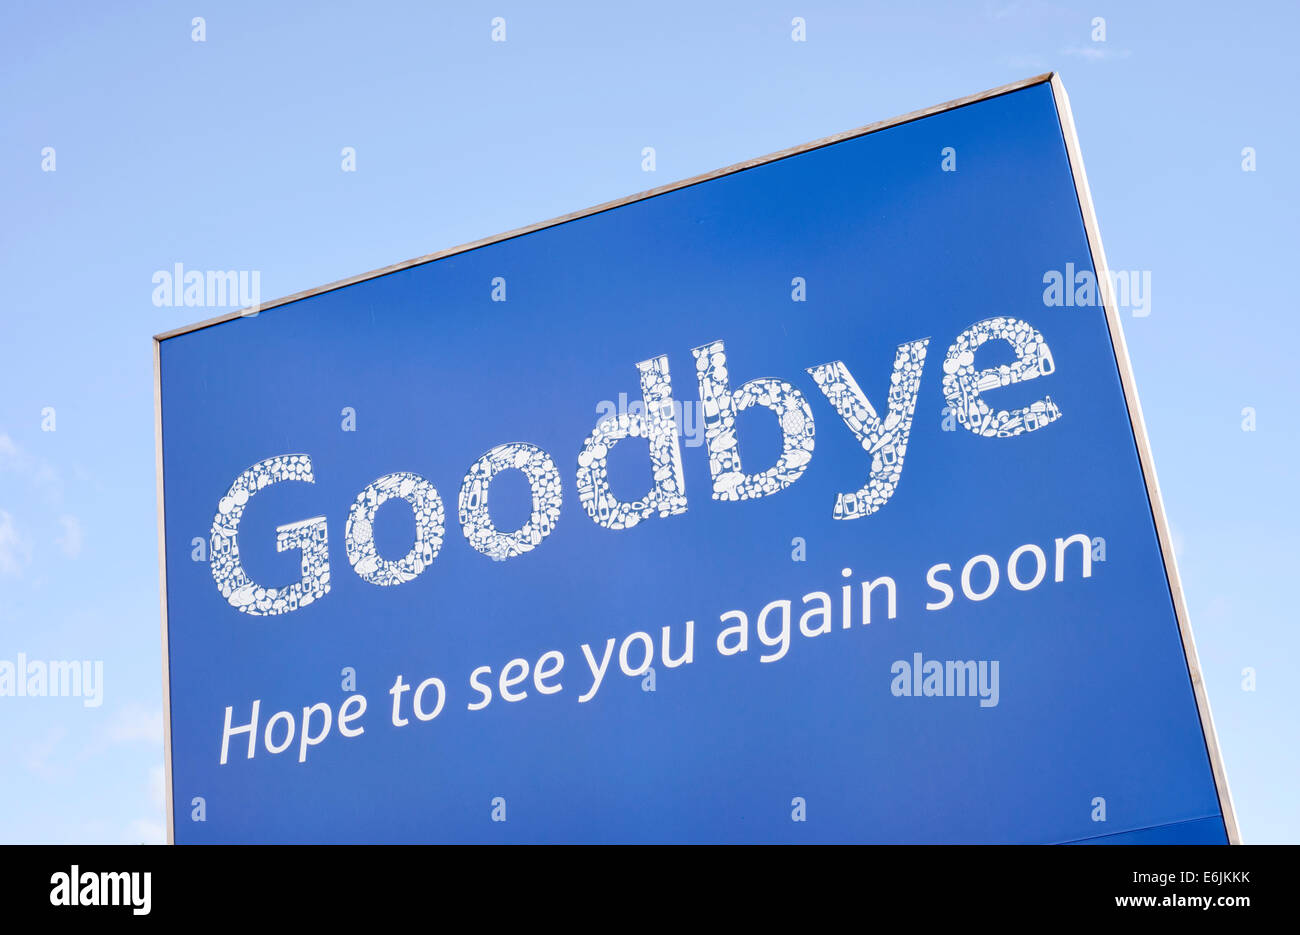 'Goodbye, Hope to see you again' sign at a Tesco store in Blackpool, Lancashire, England - Stock Image